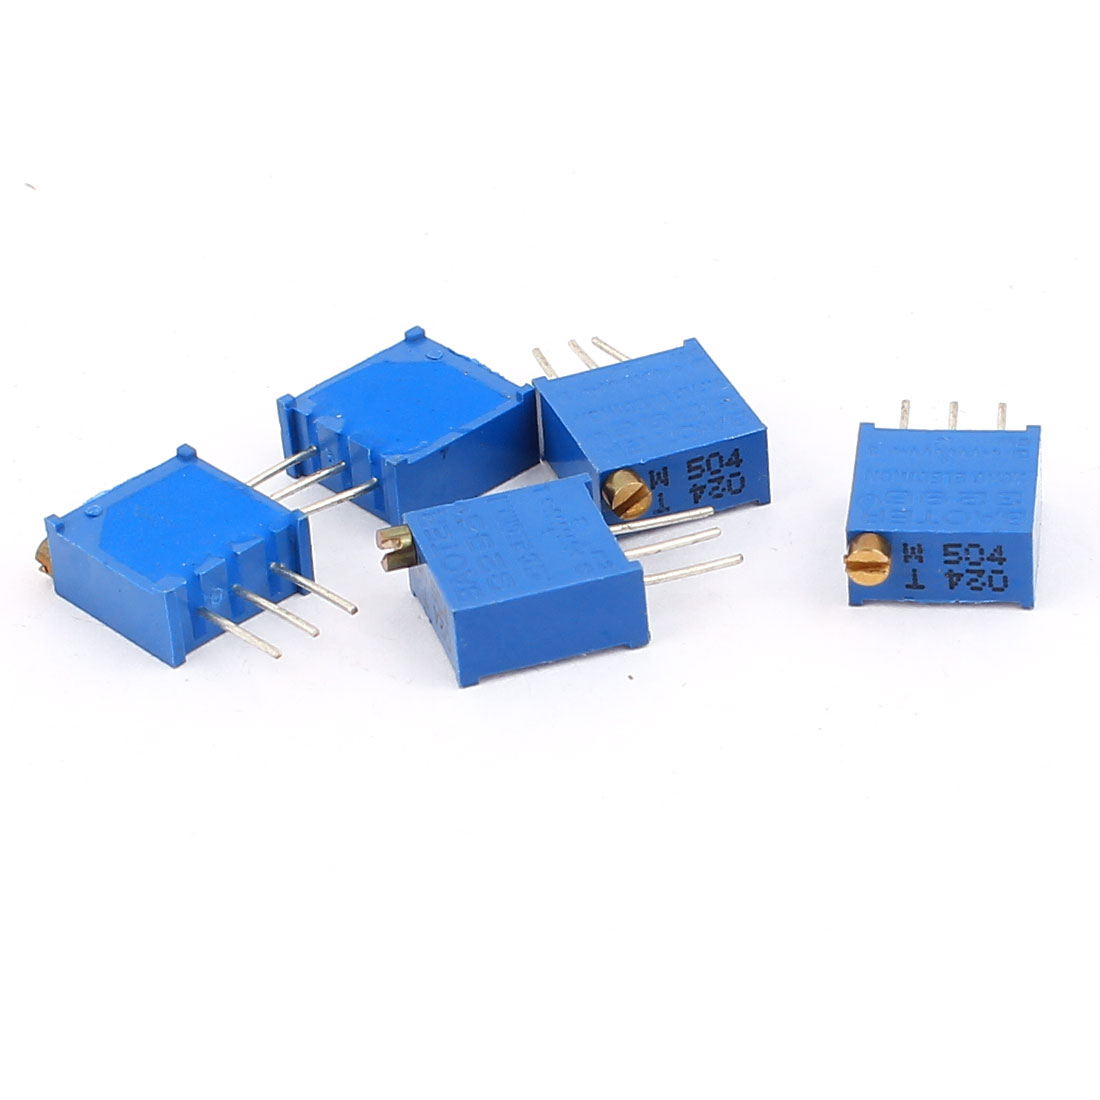 5 Pcs 3296W 500K ohm Variable Resistor Adjustable Resistance for Multiturn Potentiometer